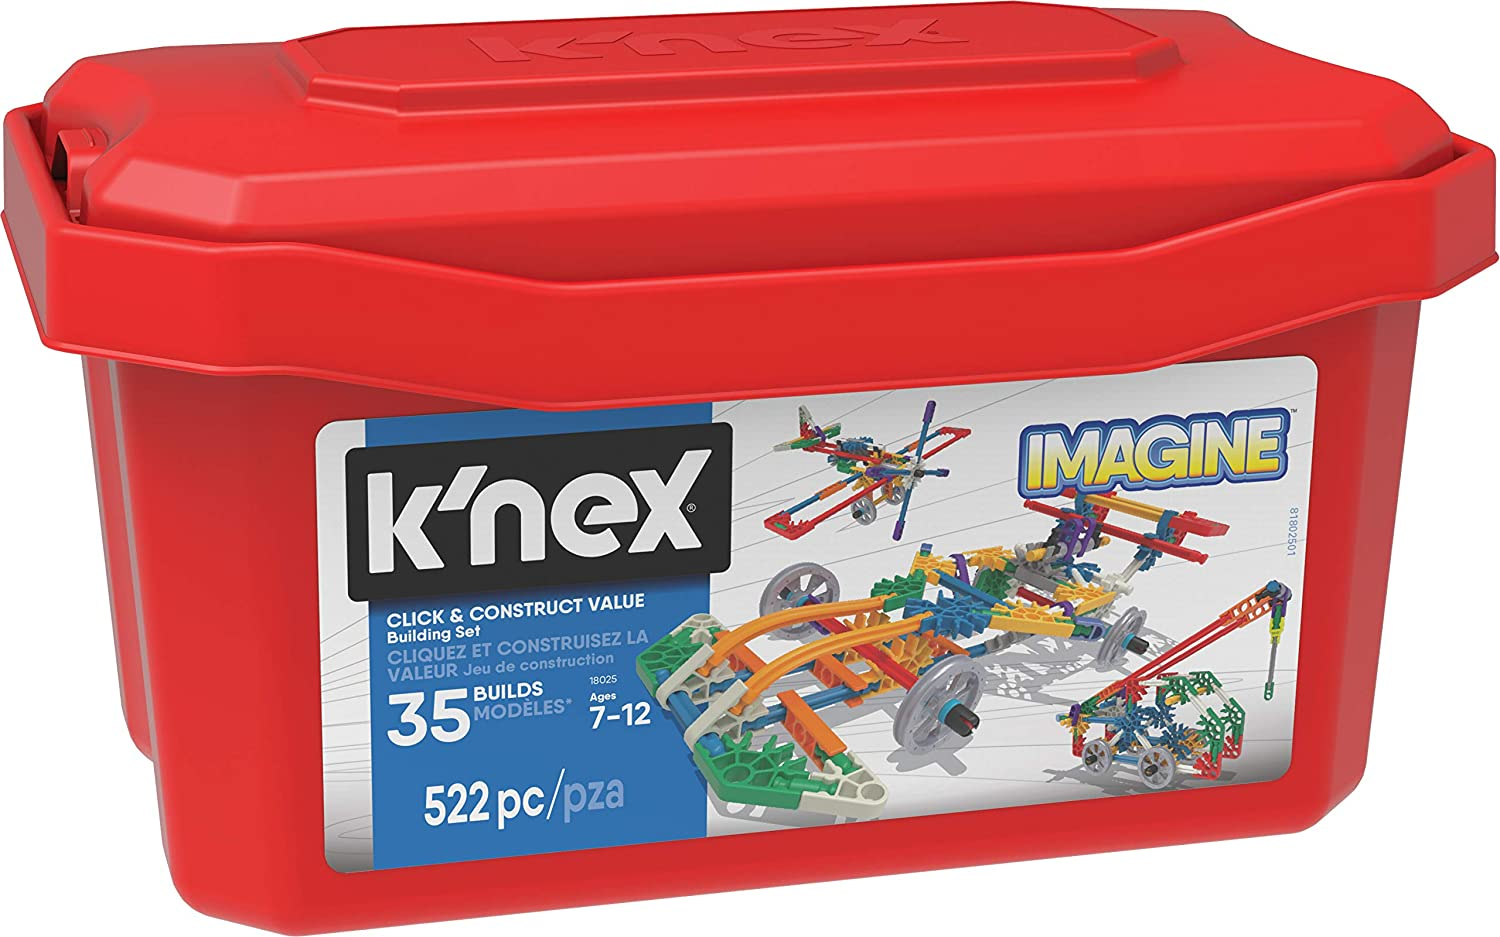 K'NEX Imagine Click & Construct ONLY $19.99 (Reg. $35)